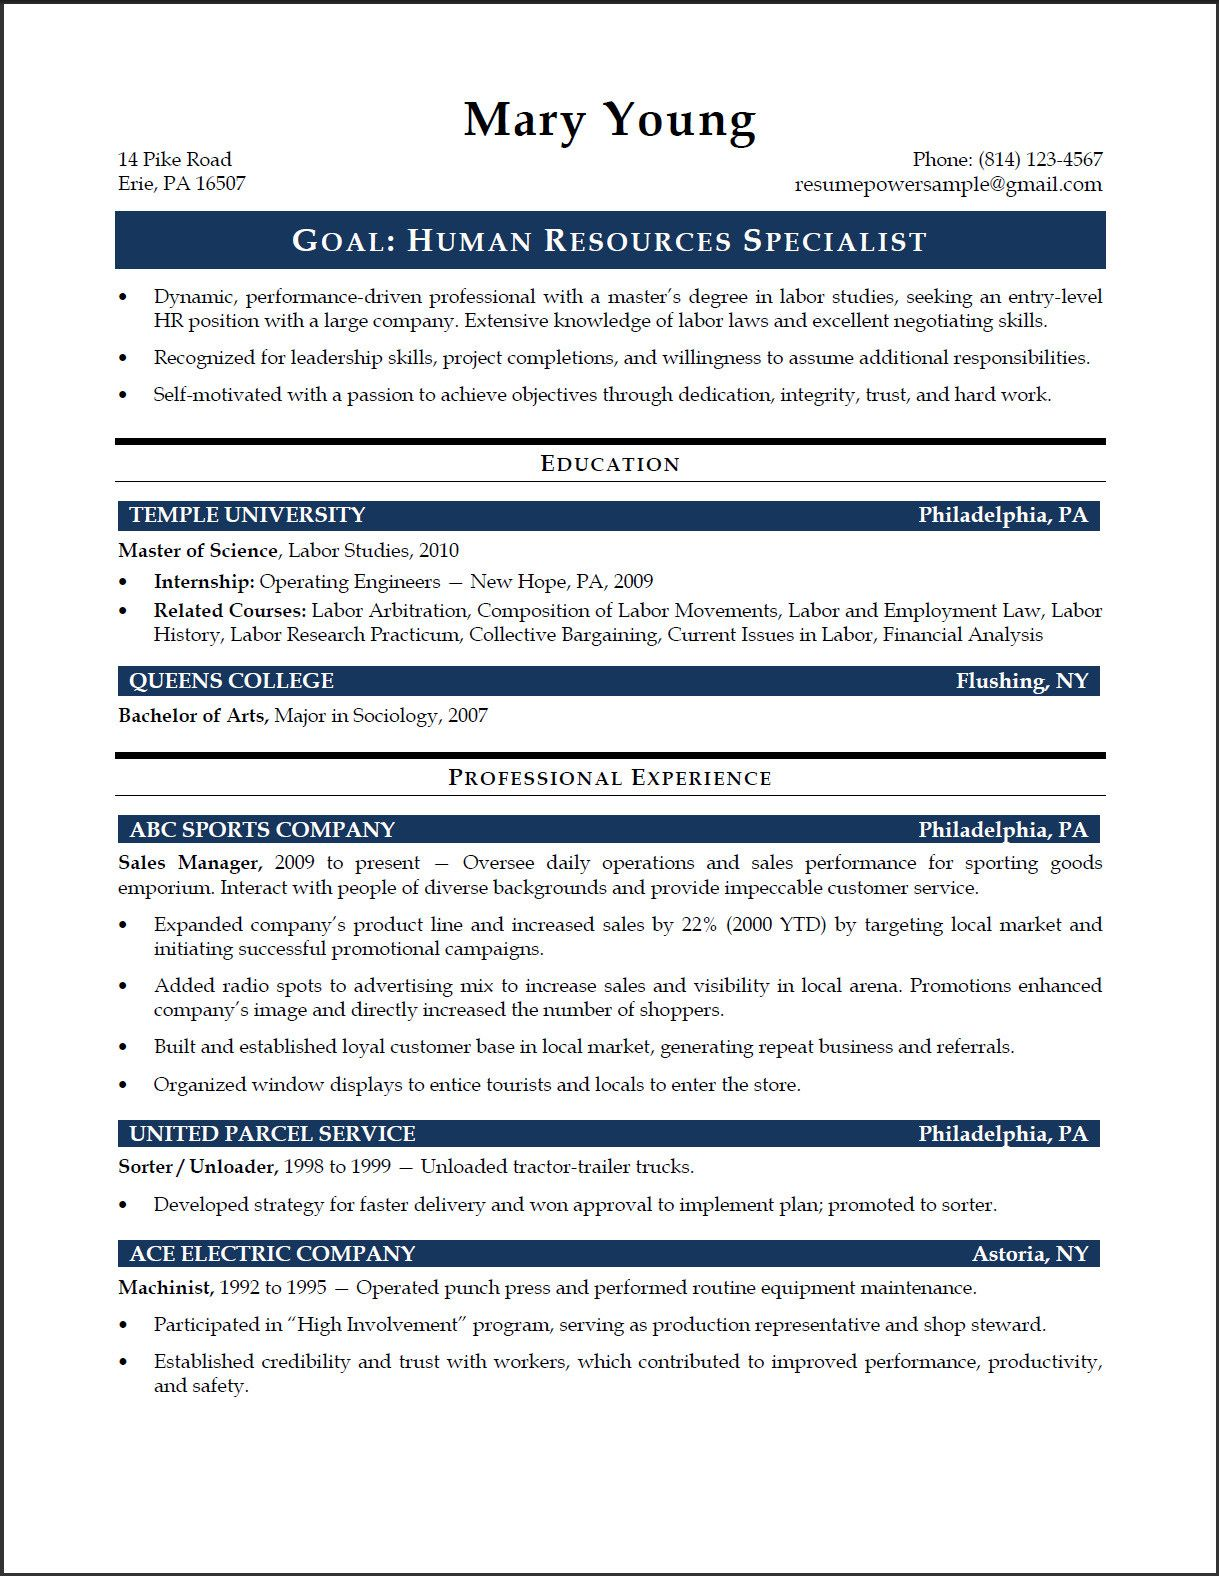 Entry Level Human Resources Resume | Writing Resources | Pinterest ...